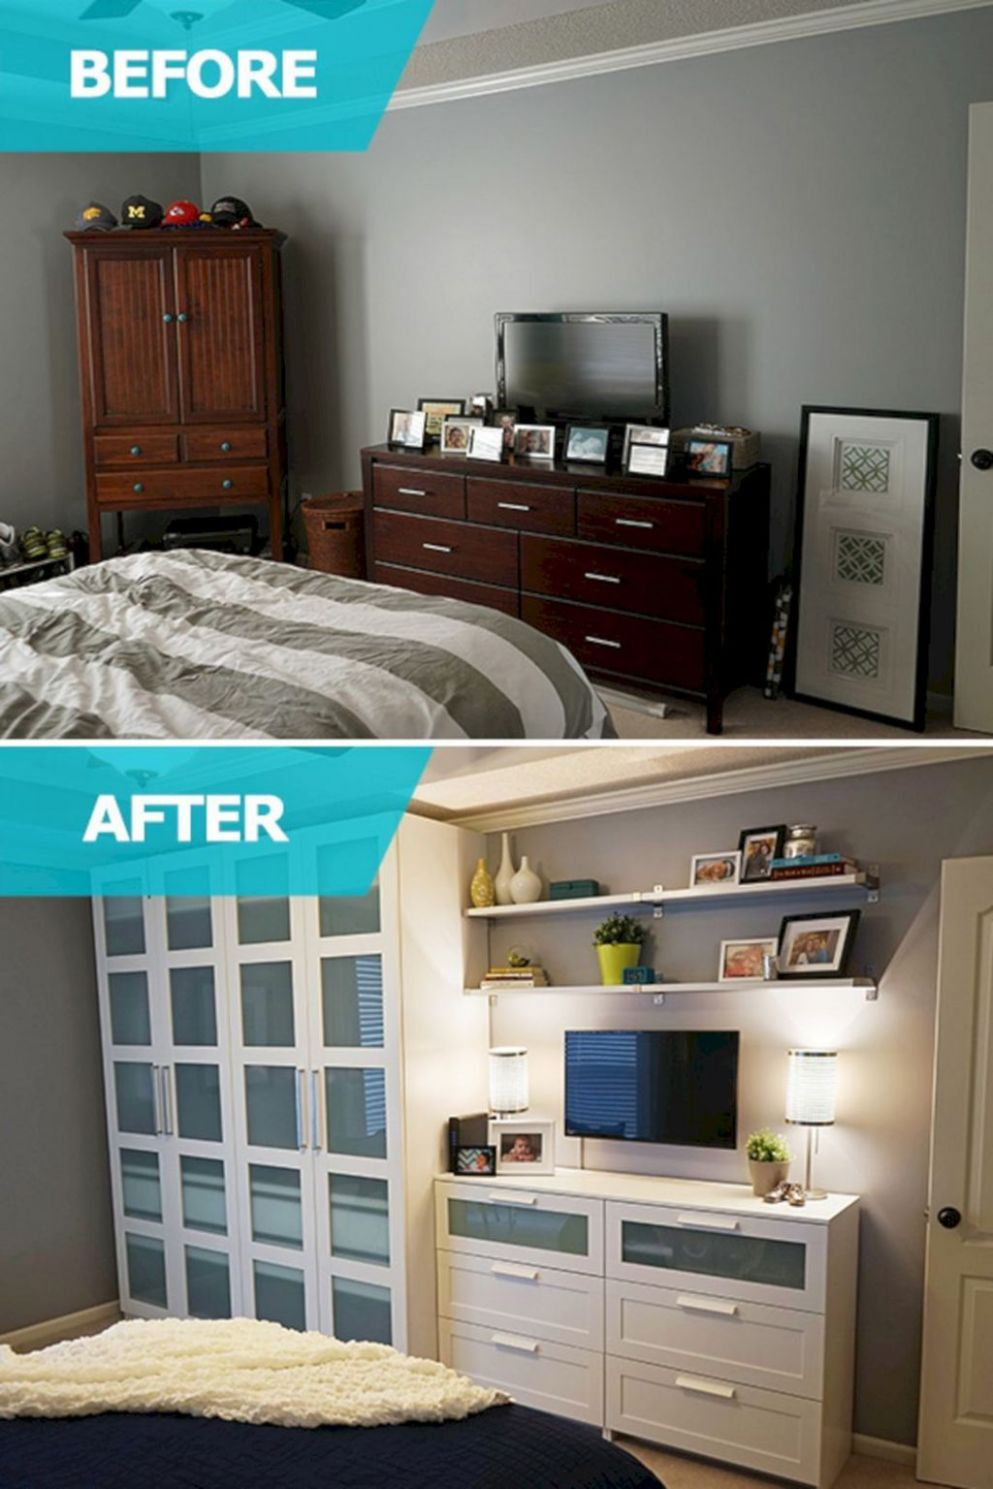 The Best Bedroom Storage Ideas For Small Room Spaces No 8 ..